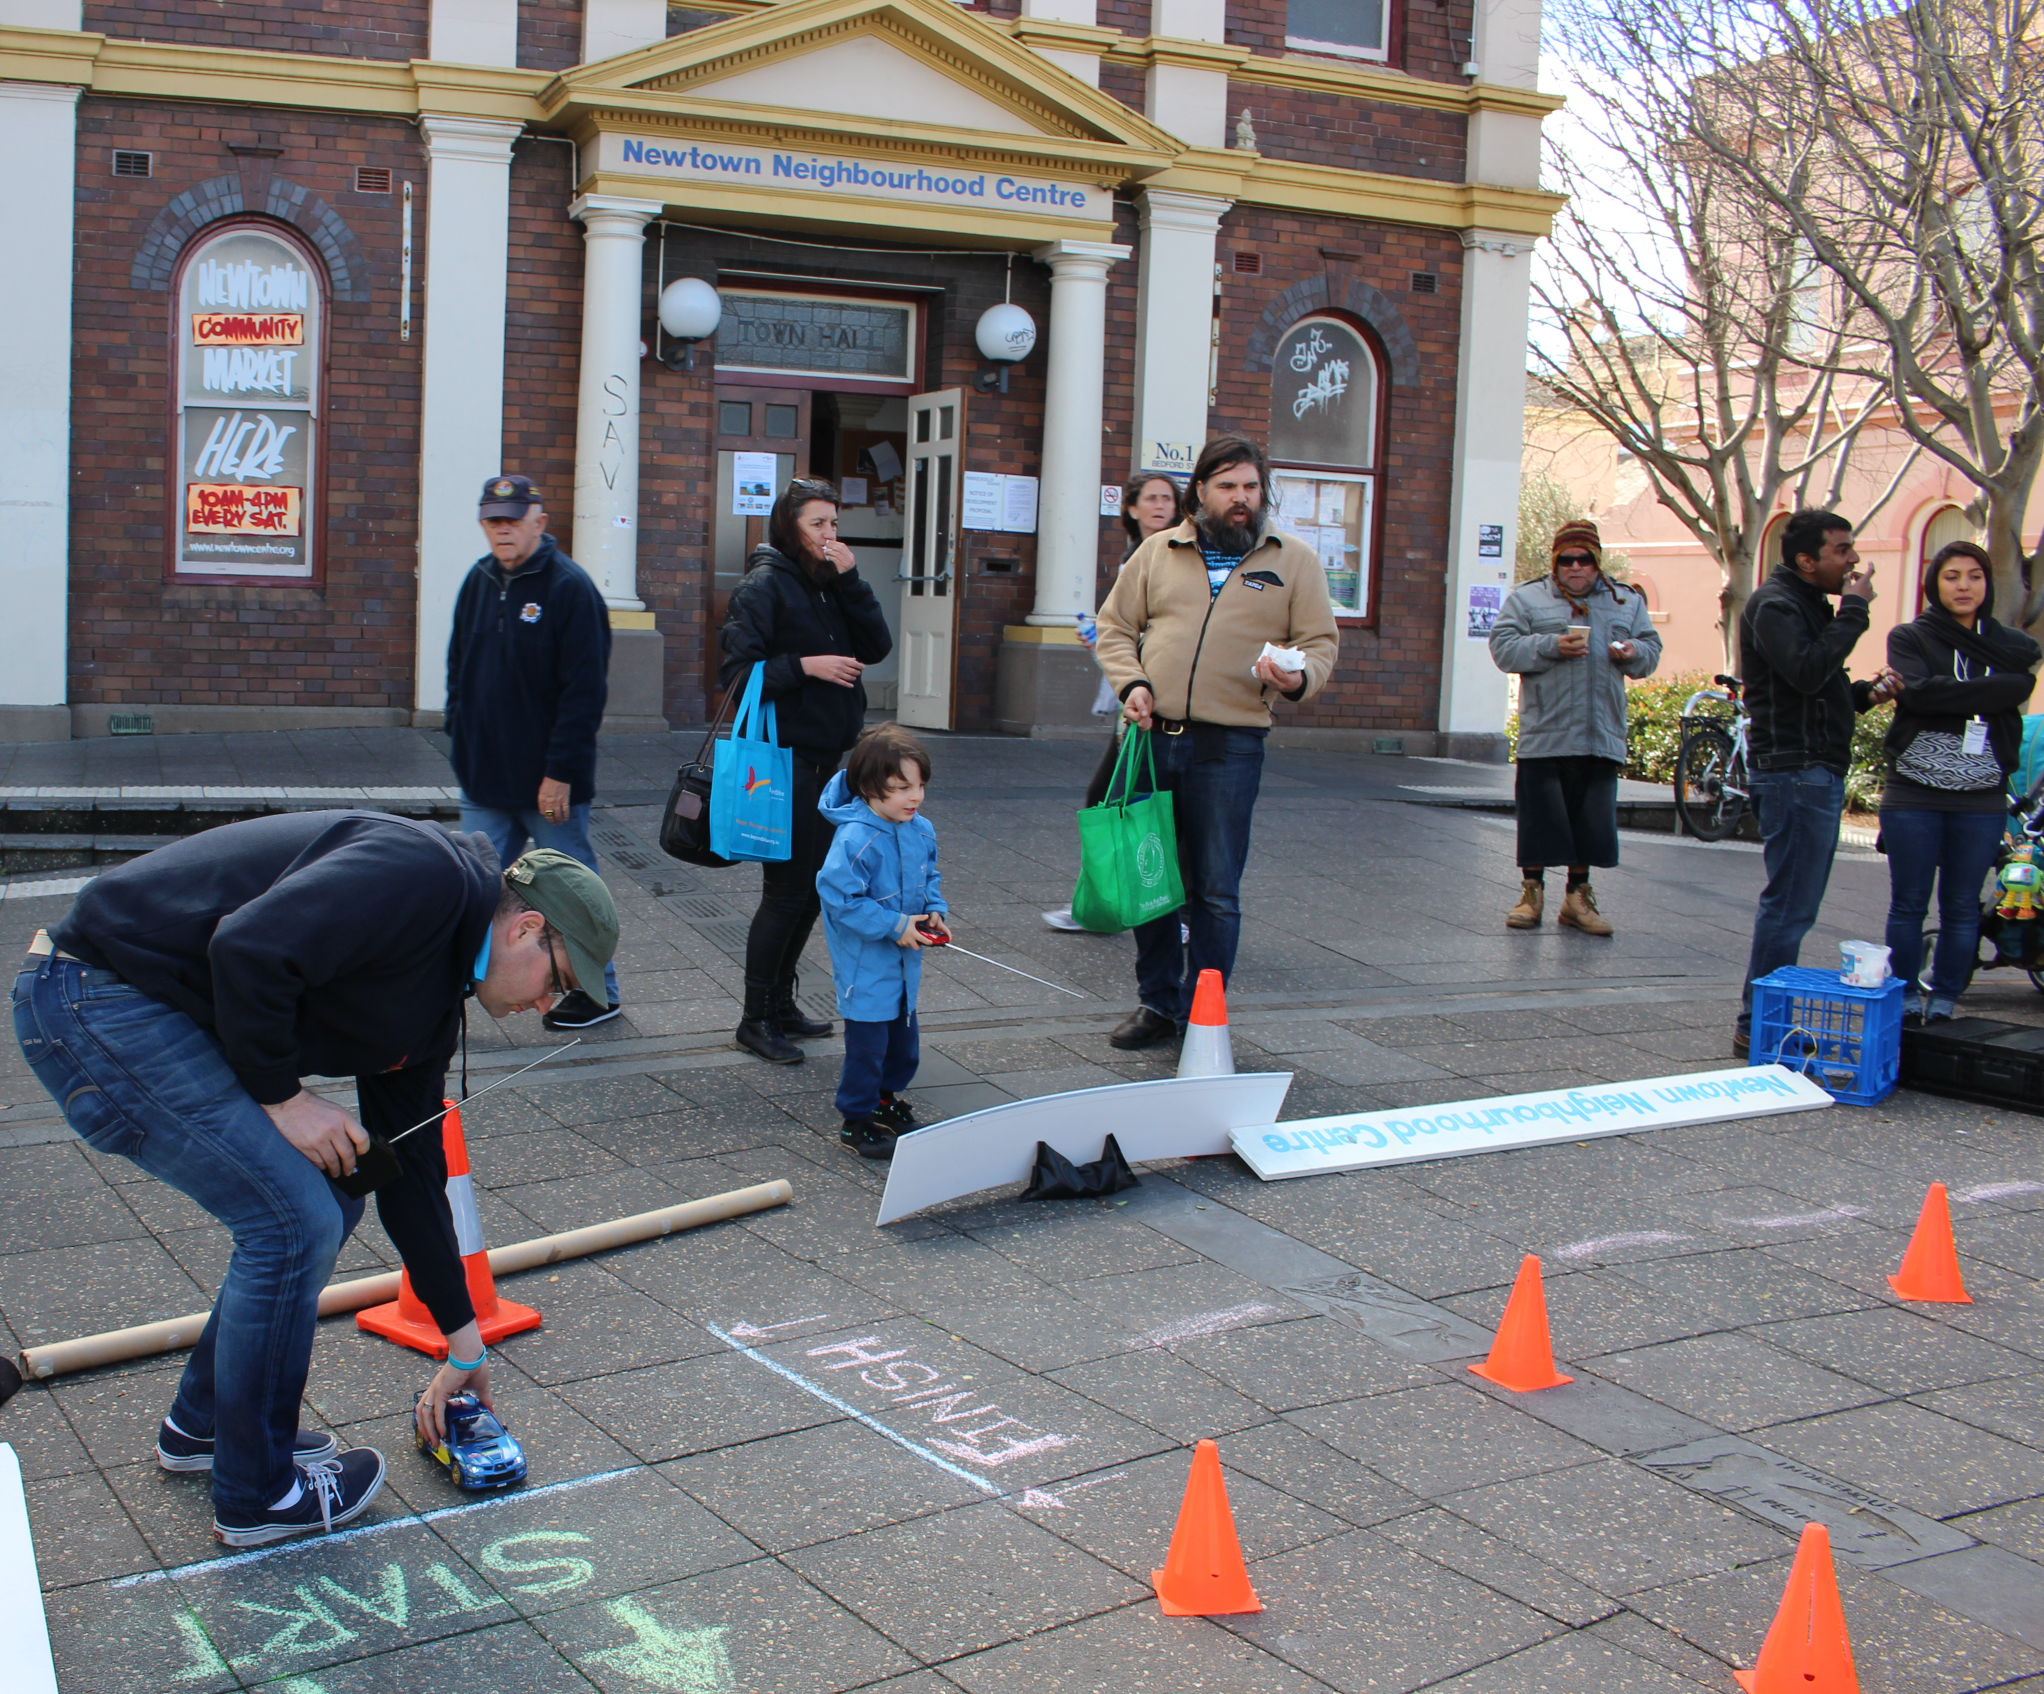 Remote control car racing in Newtown.